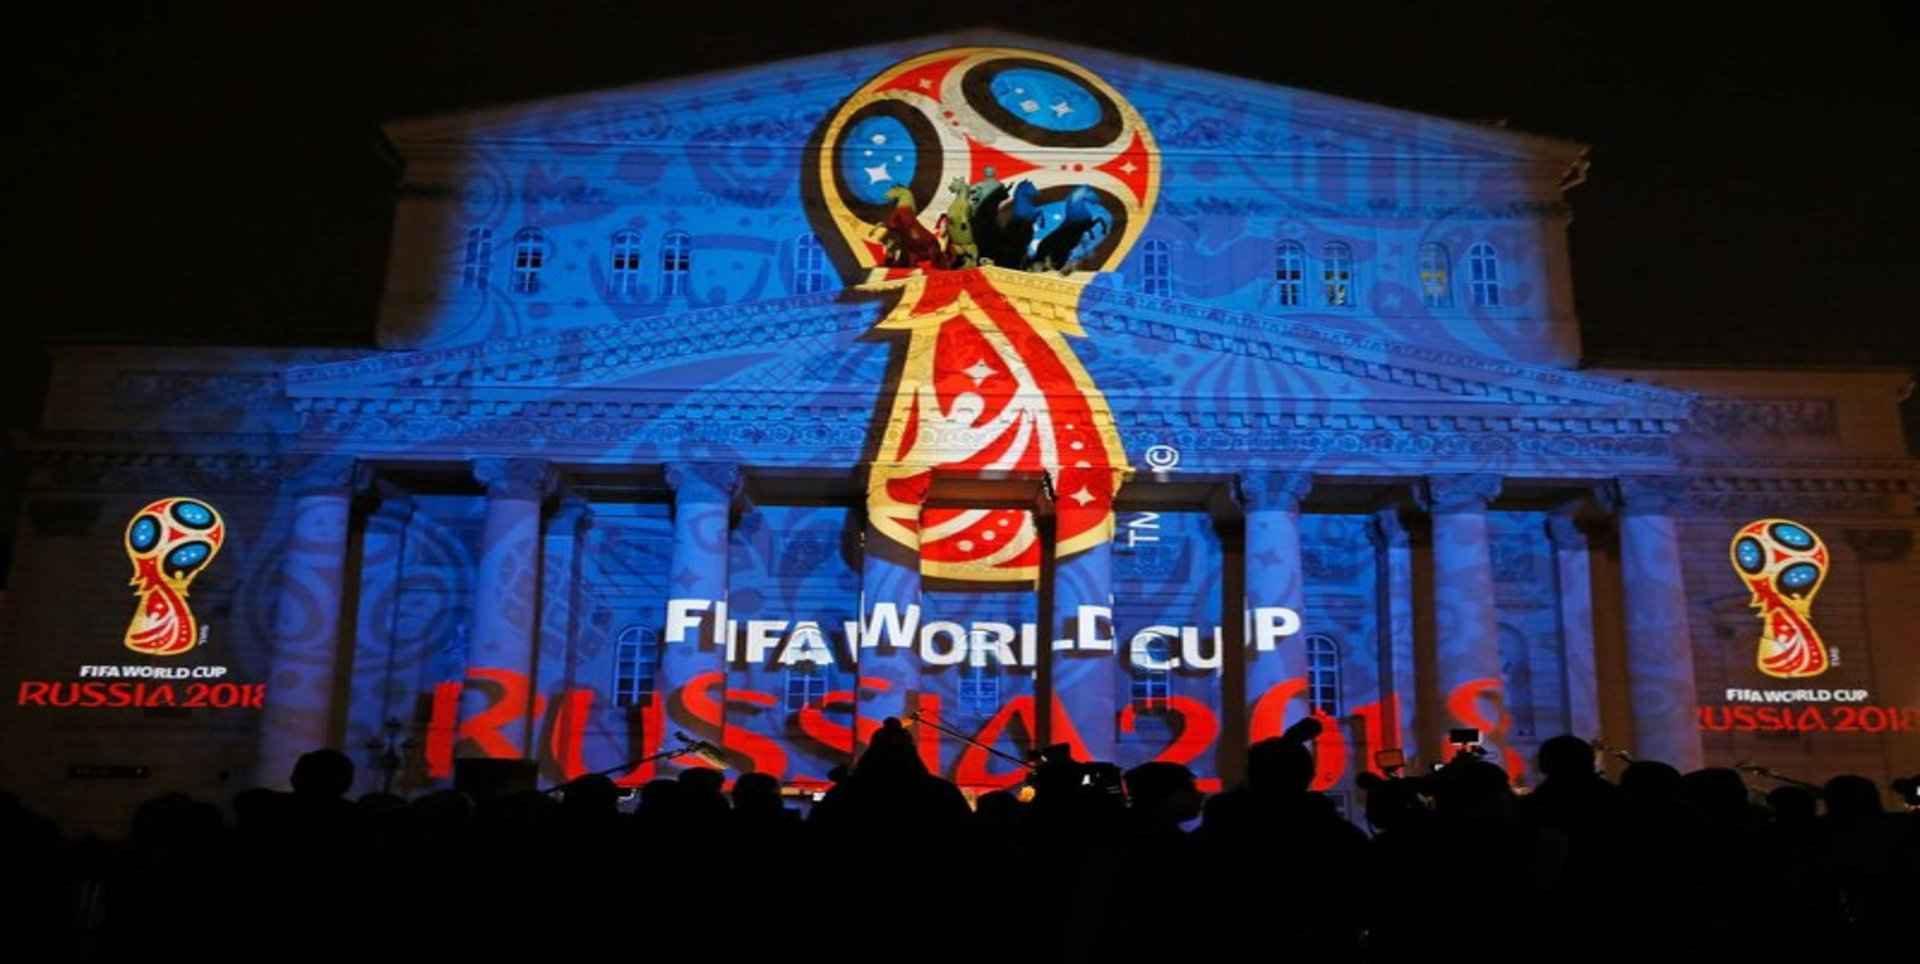 Watch Argentina vs Germany fifa Worldcup 2014 Highlight